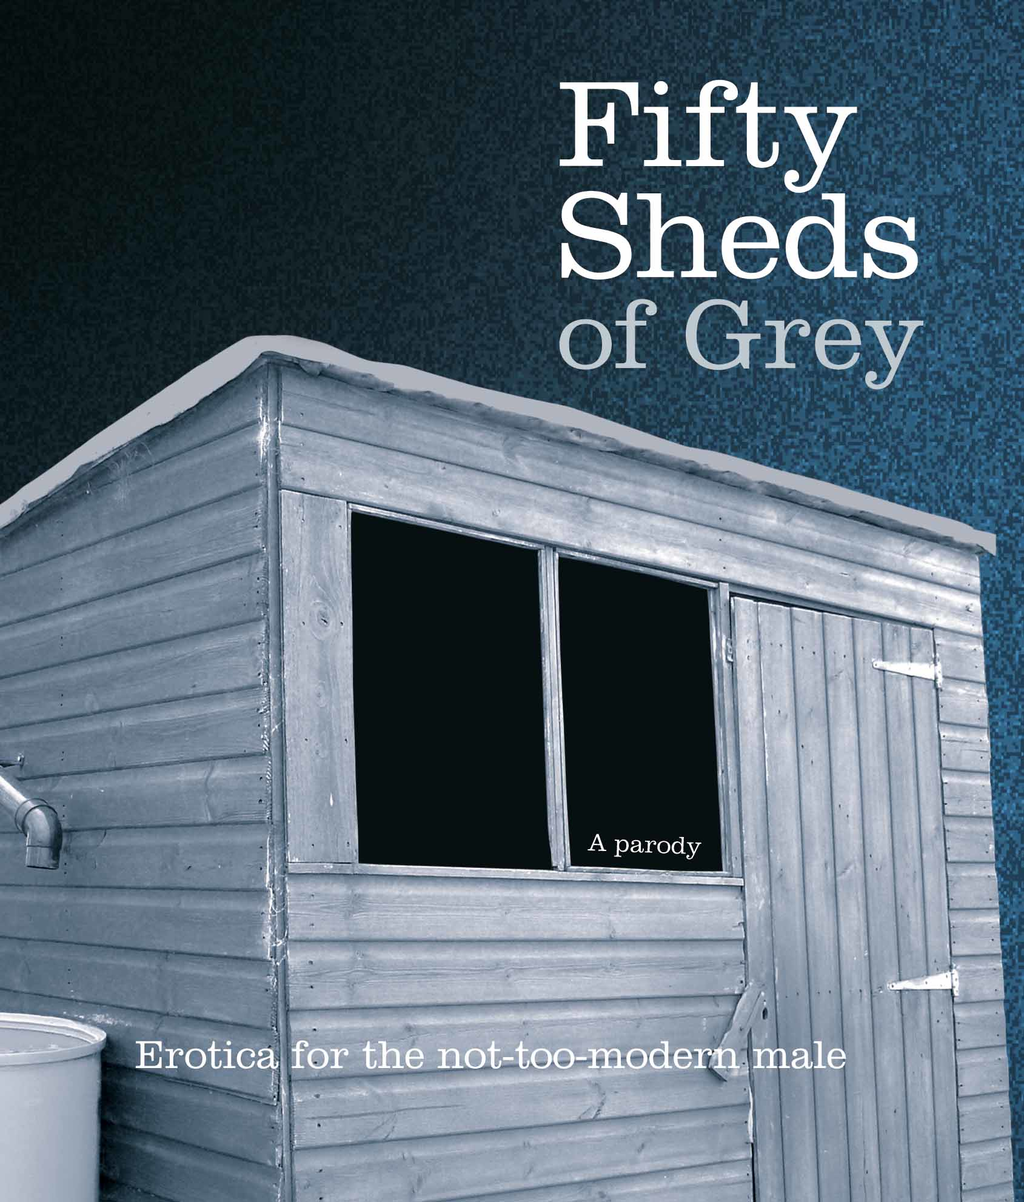 Fifty Sheds of Grey: Erotica for the not-too-modern male Erotica for the not-too-modern male